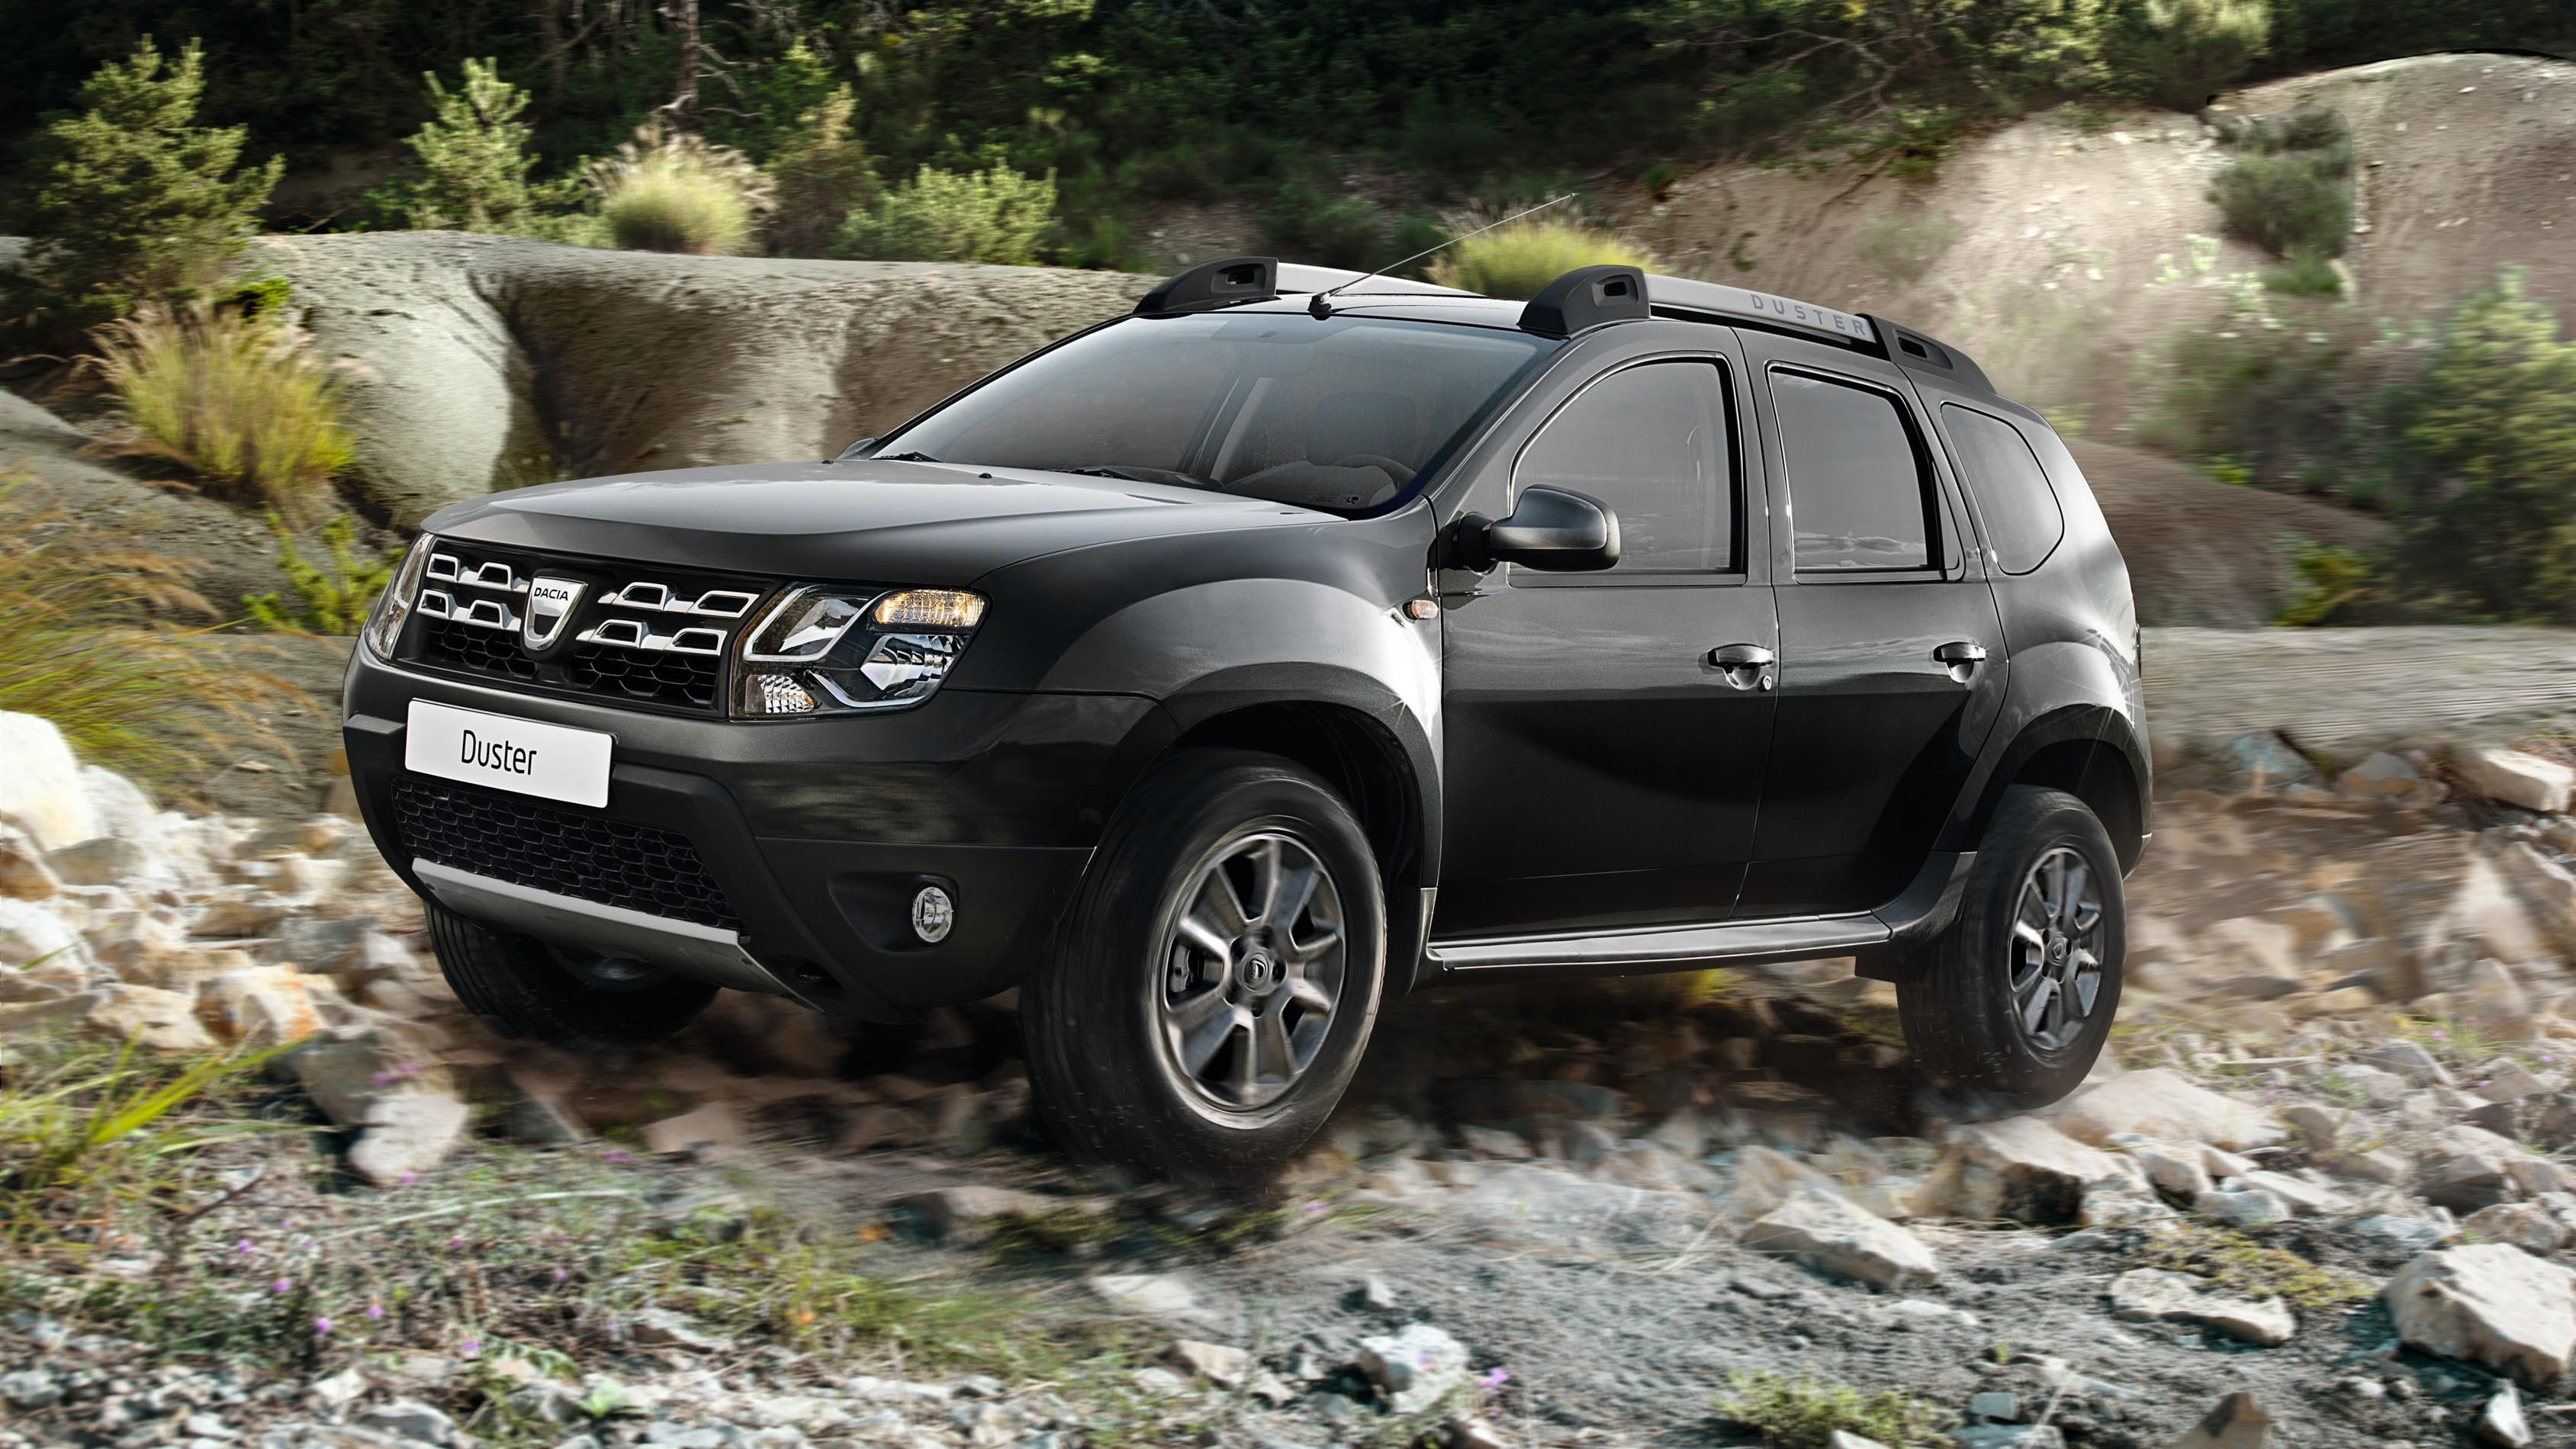 dacia duster facelift mai robust i mai dotat update. Black Bedroom Furniture Sets. Home Design Ideas